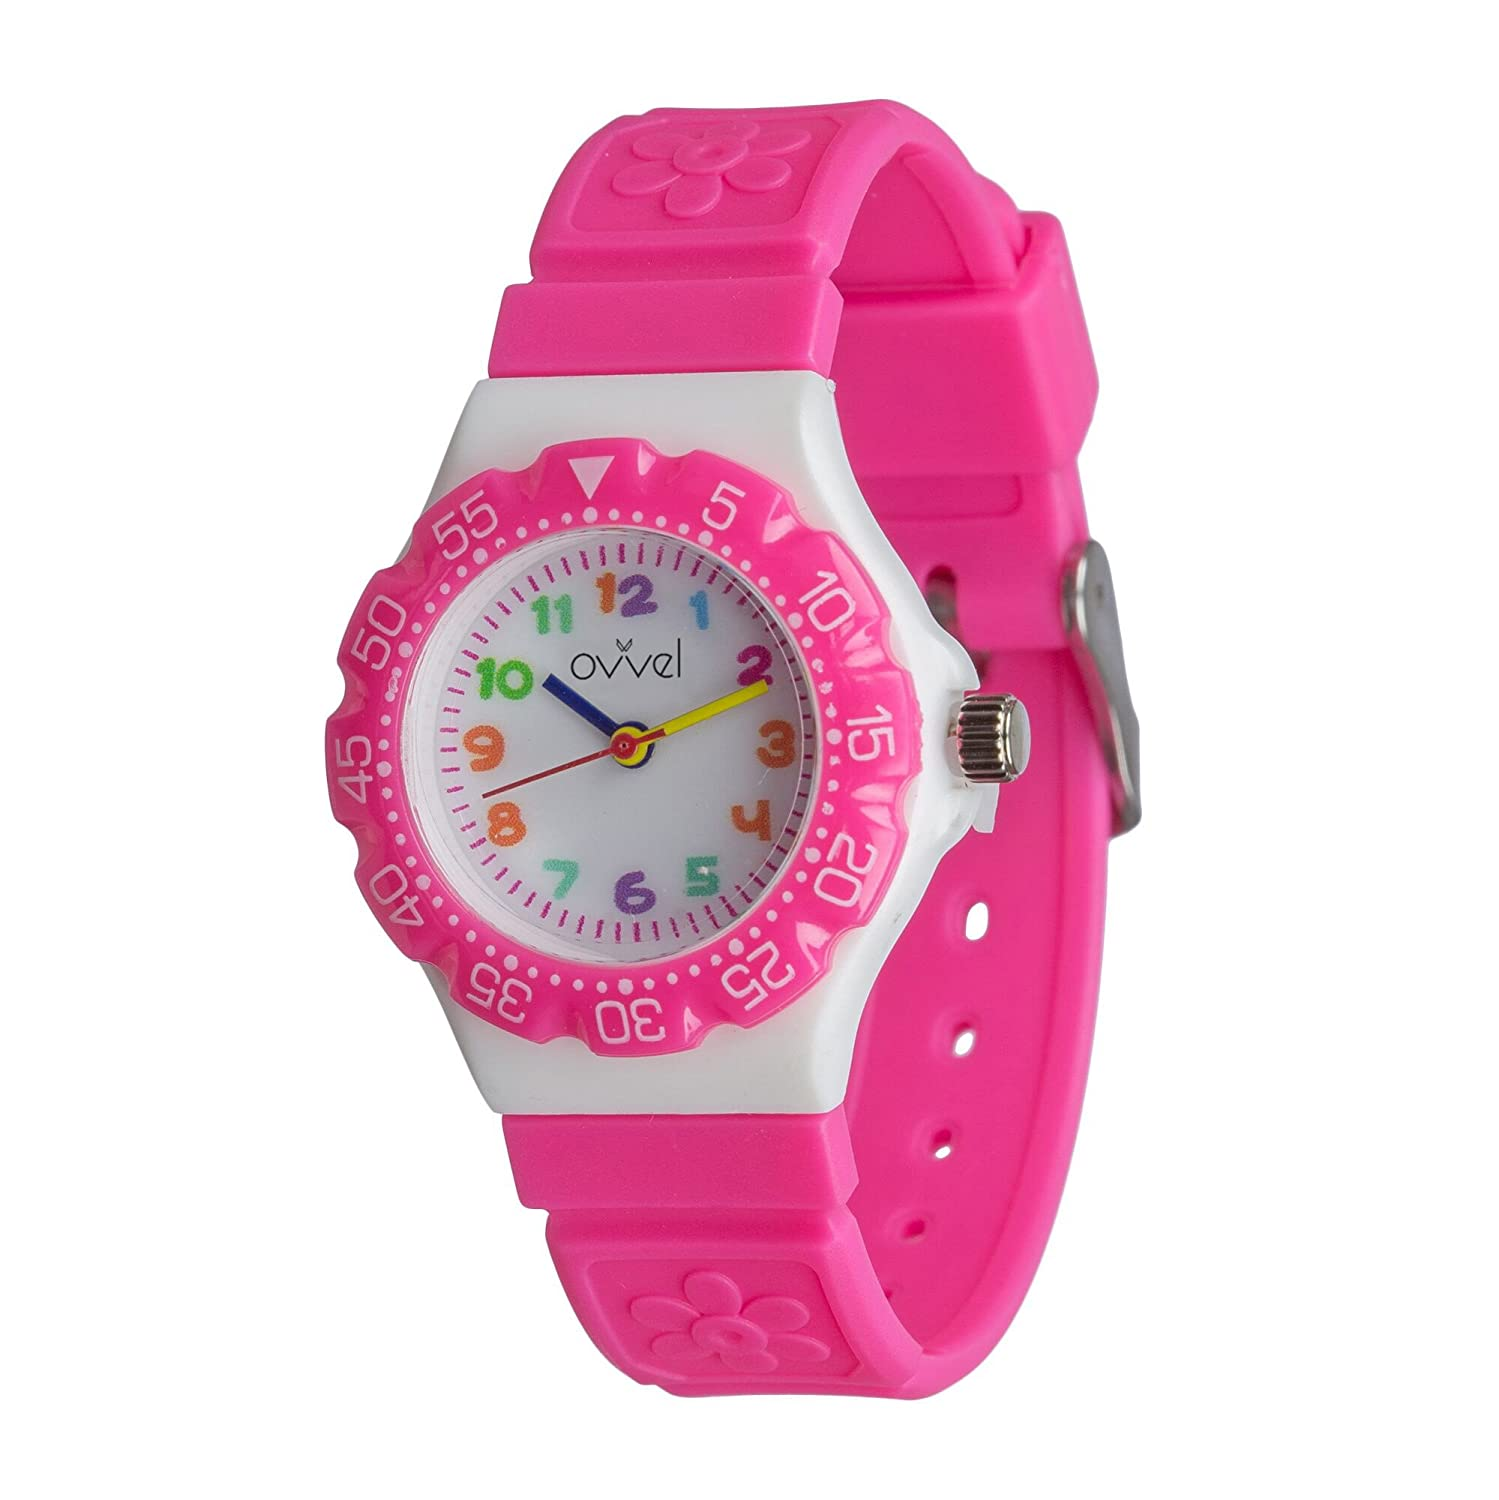 Trendy Pink Watches For Teen Girls and Kids images